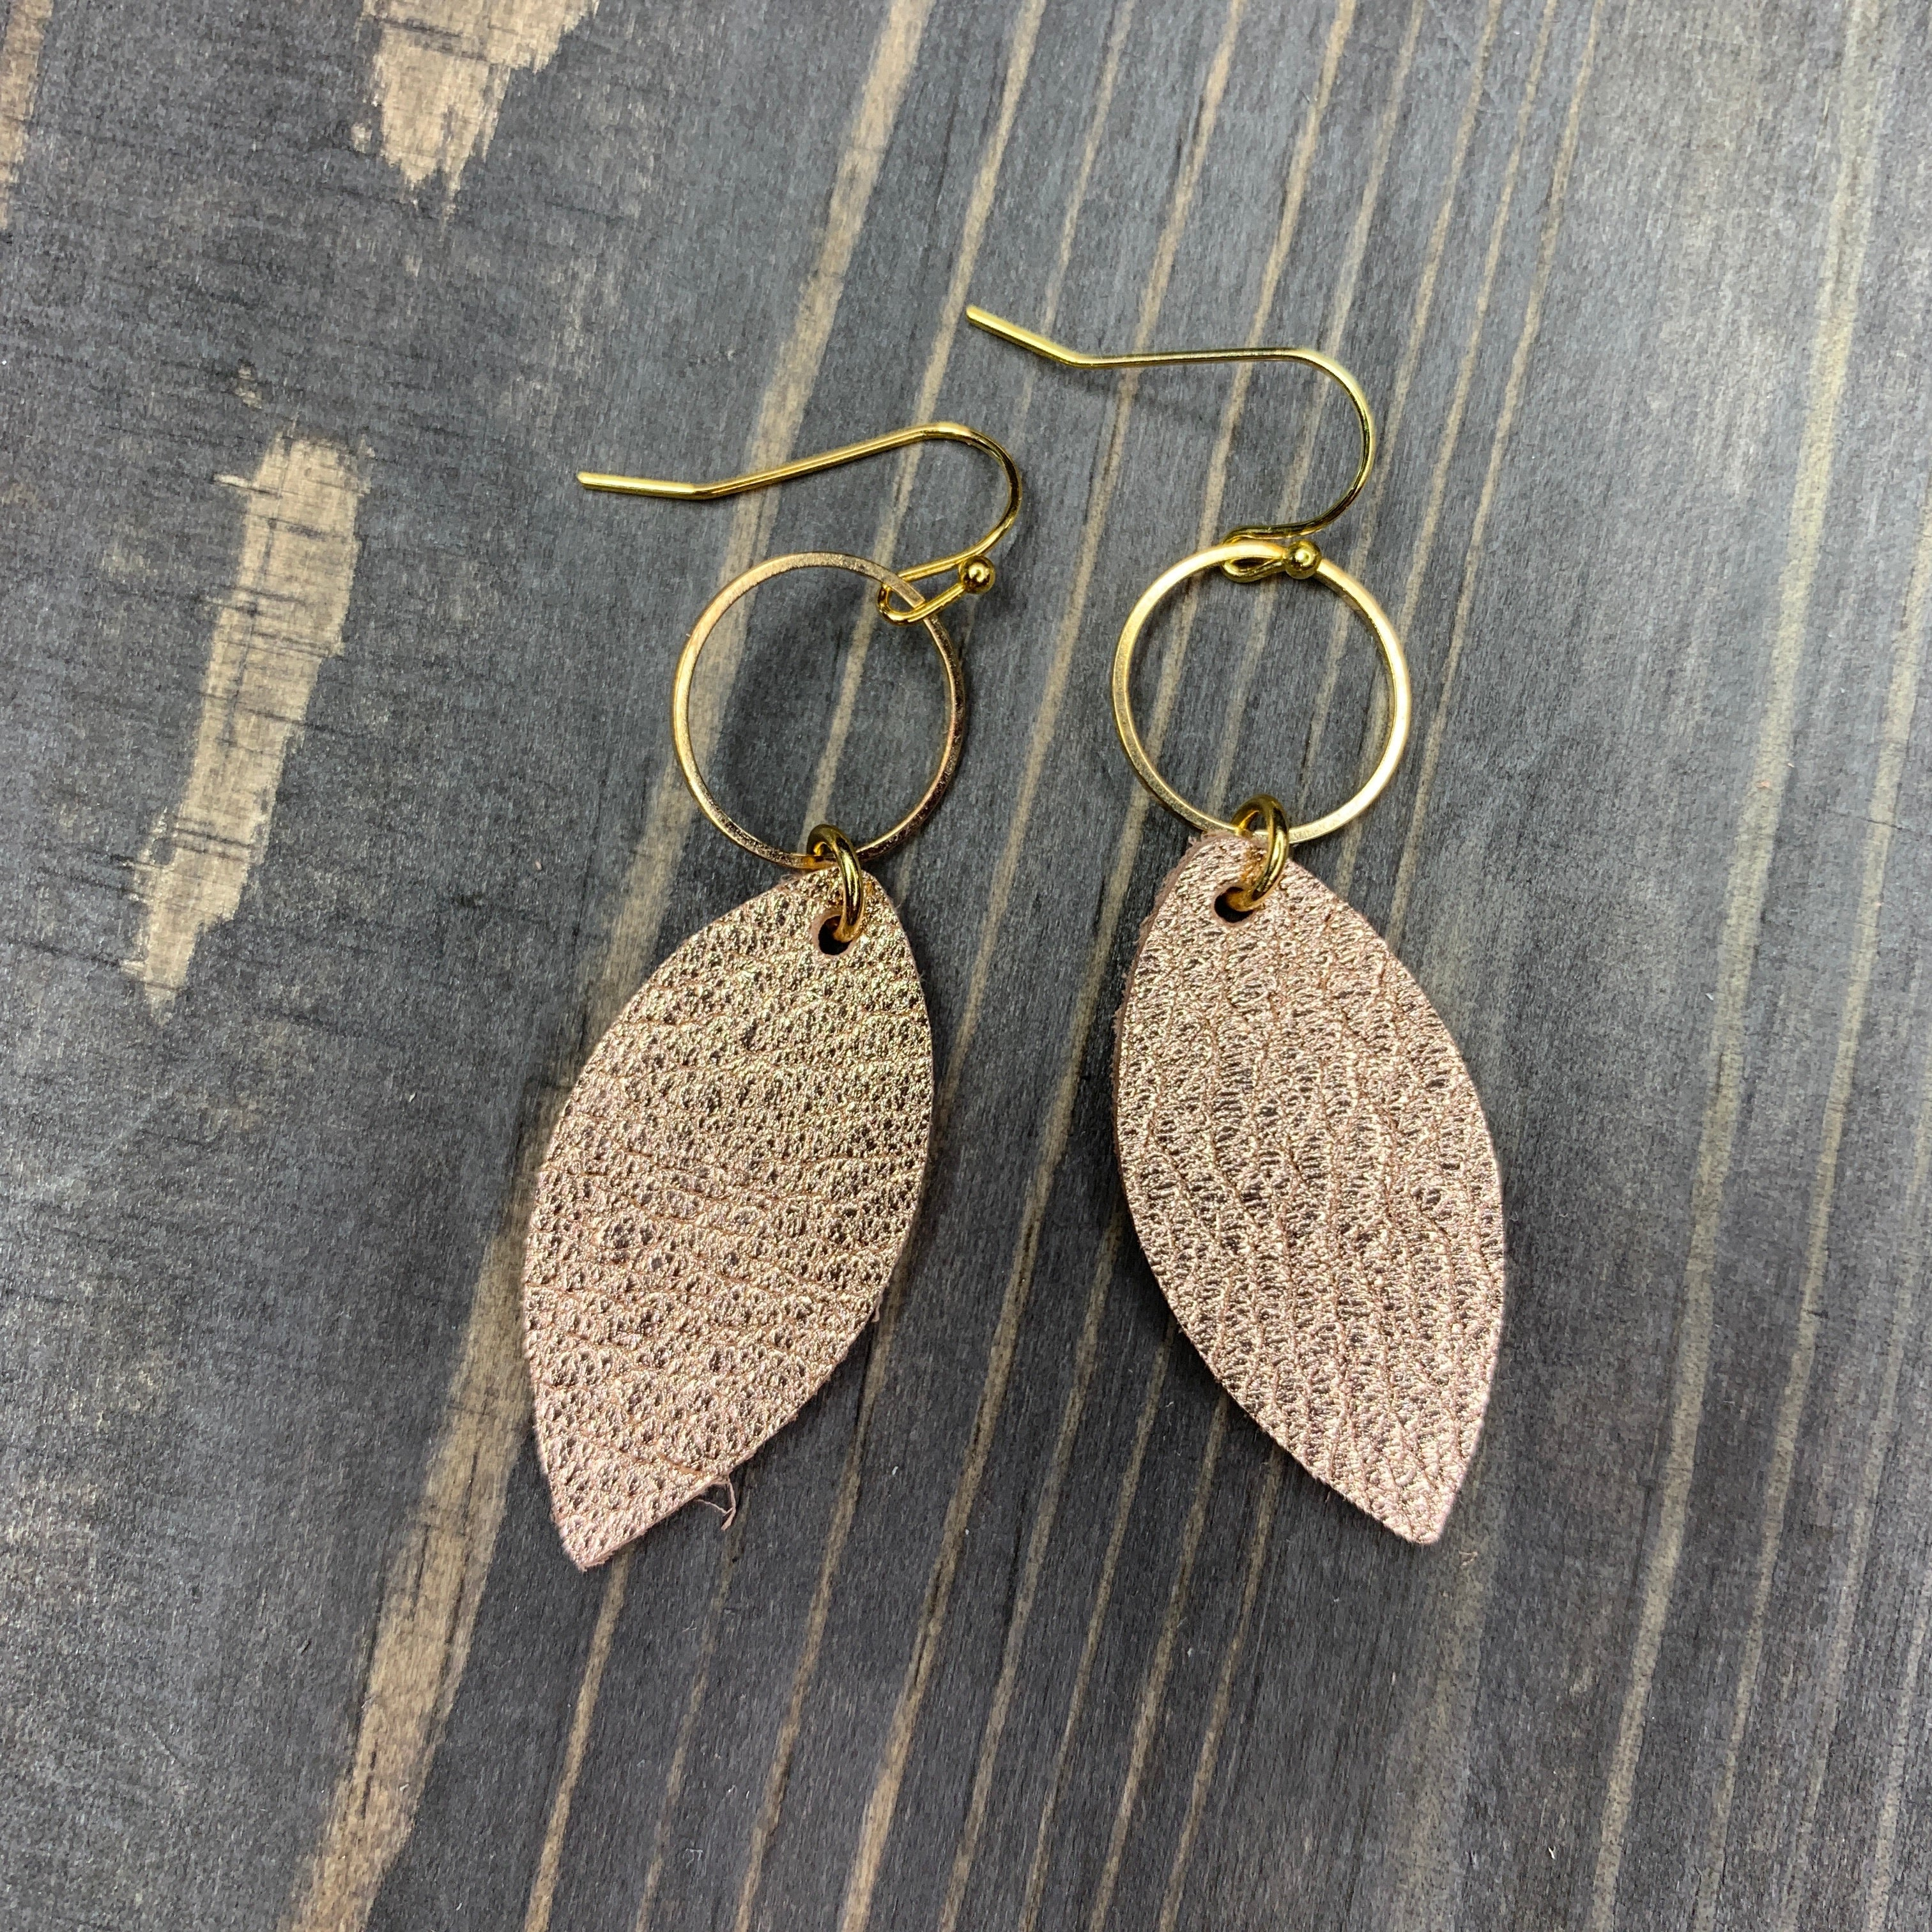 Handmade Rose Gold Small Feather Leather Earrings